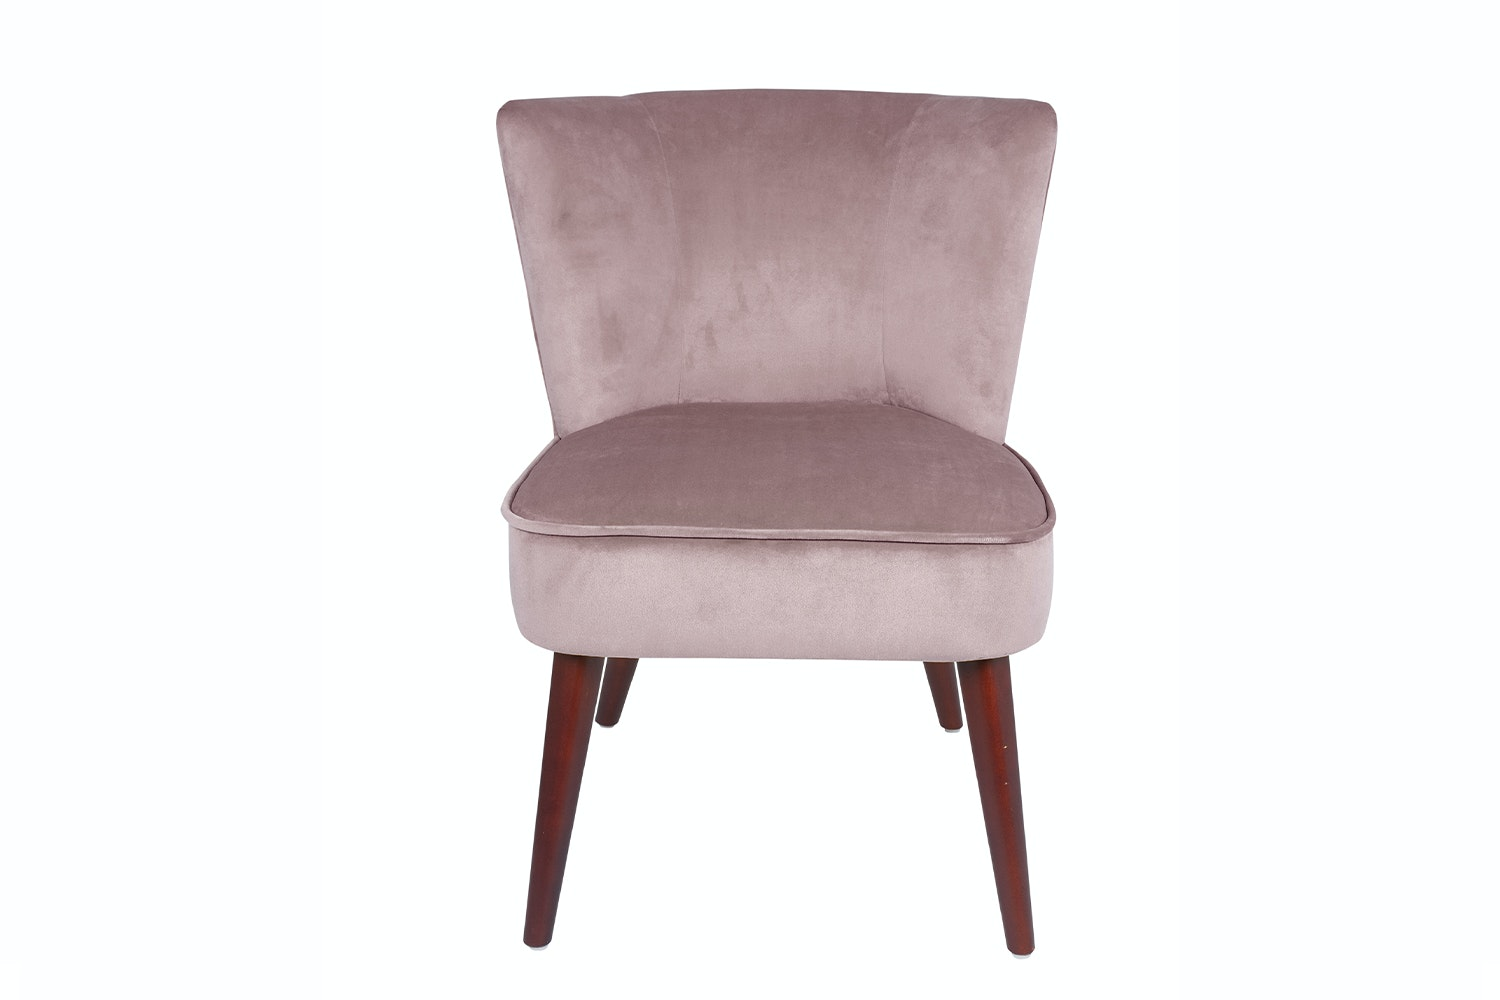 Velvet Chair | Blush Pink